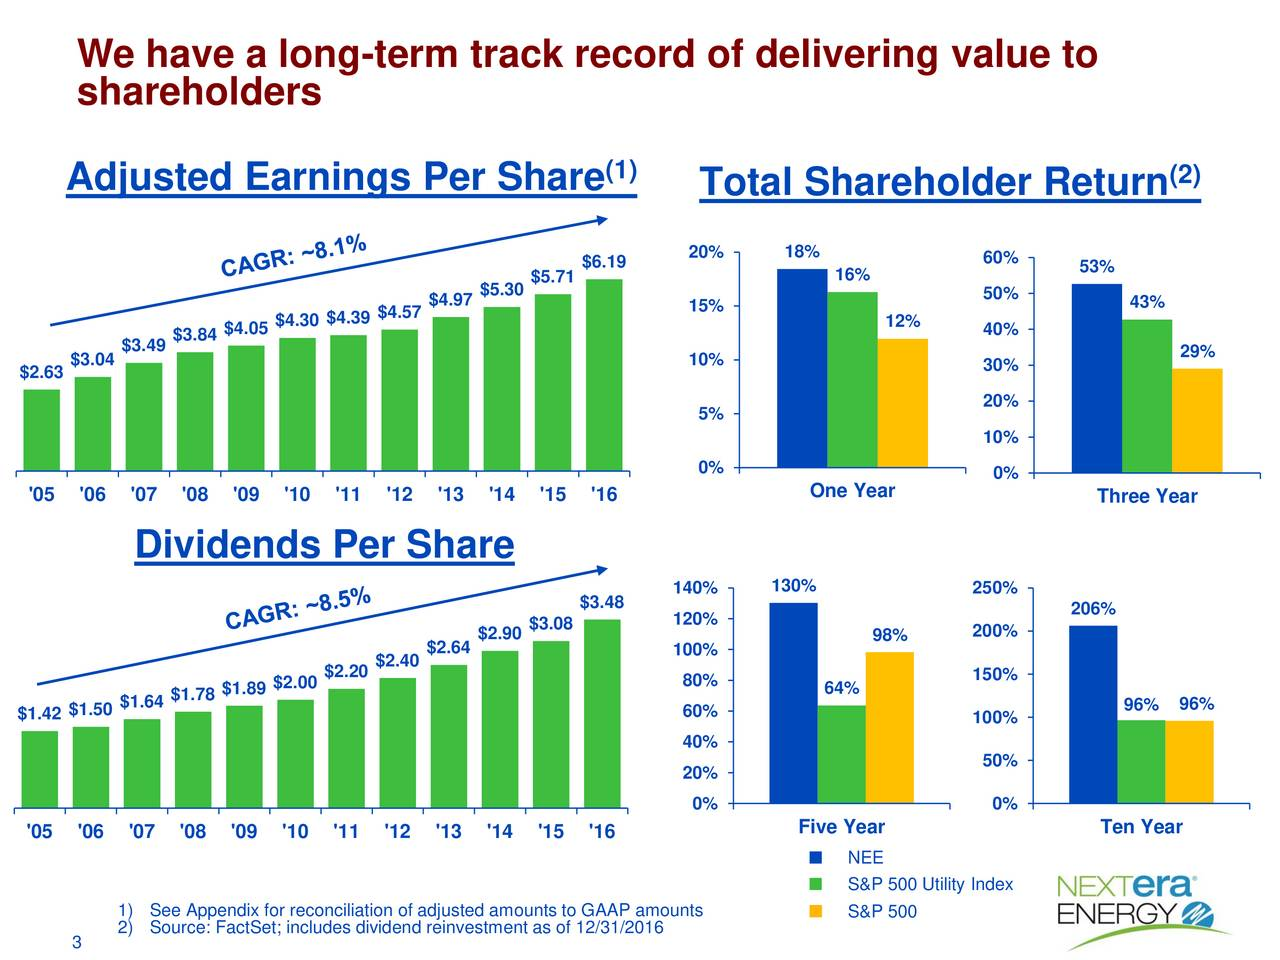 We have a long-term track record of delivering value to